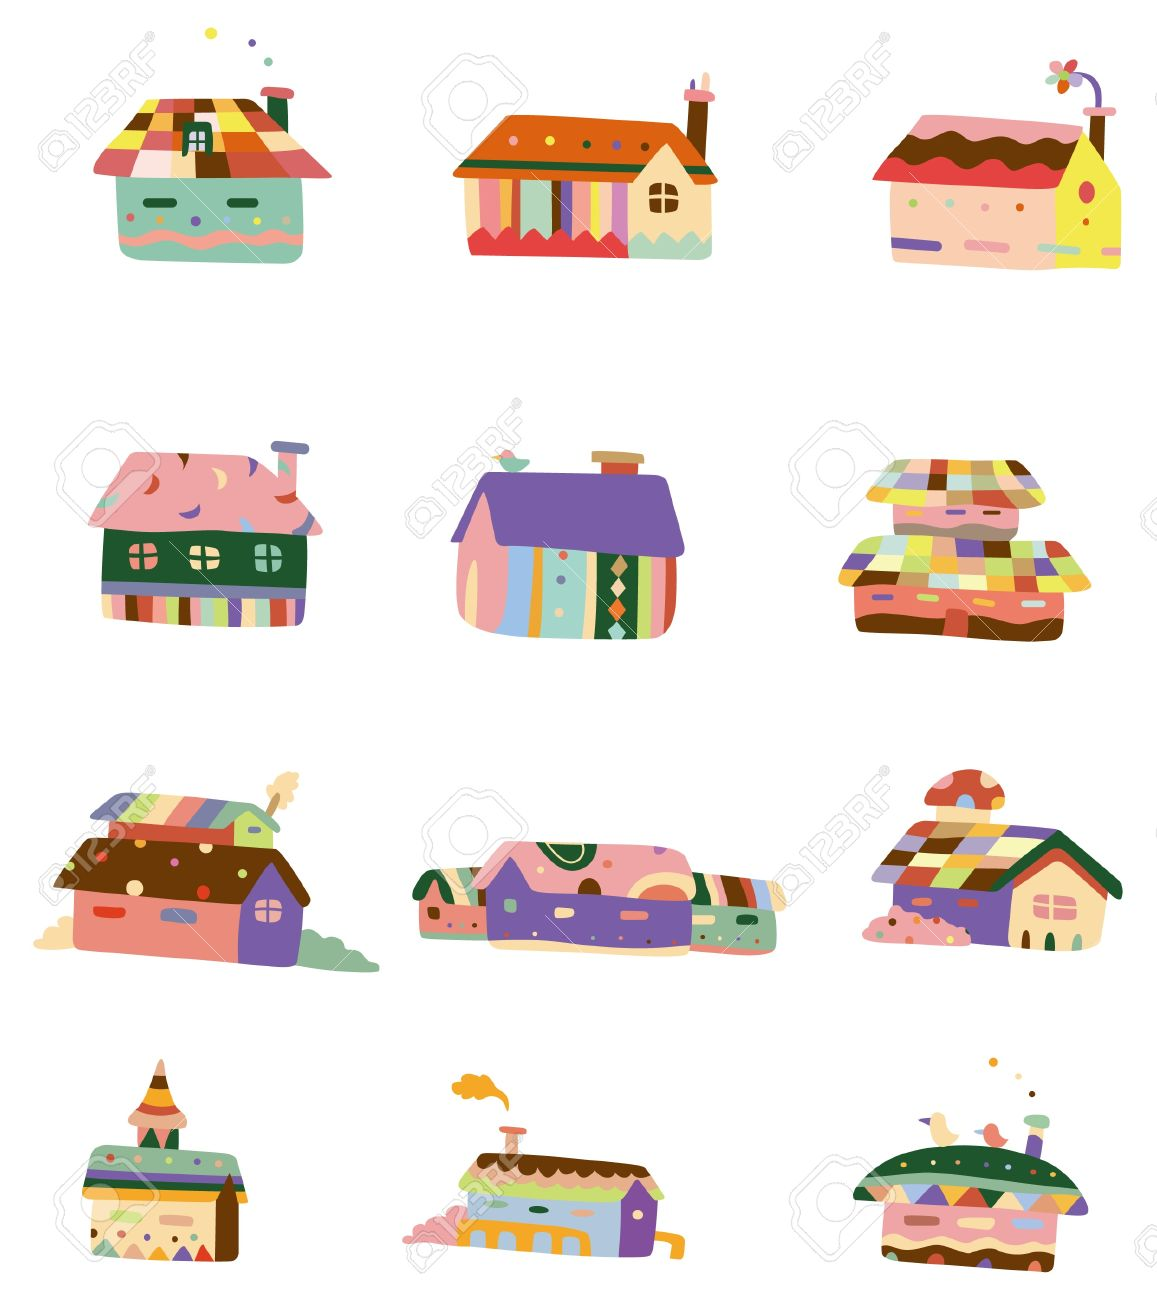 cartoon color house icon royalty free cliparts vectors and stock